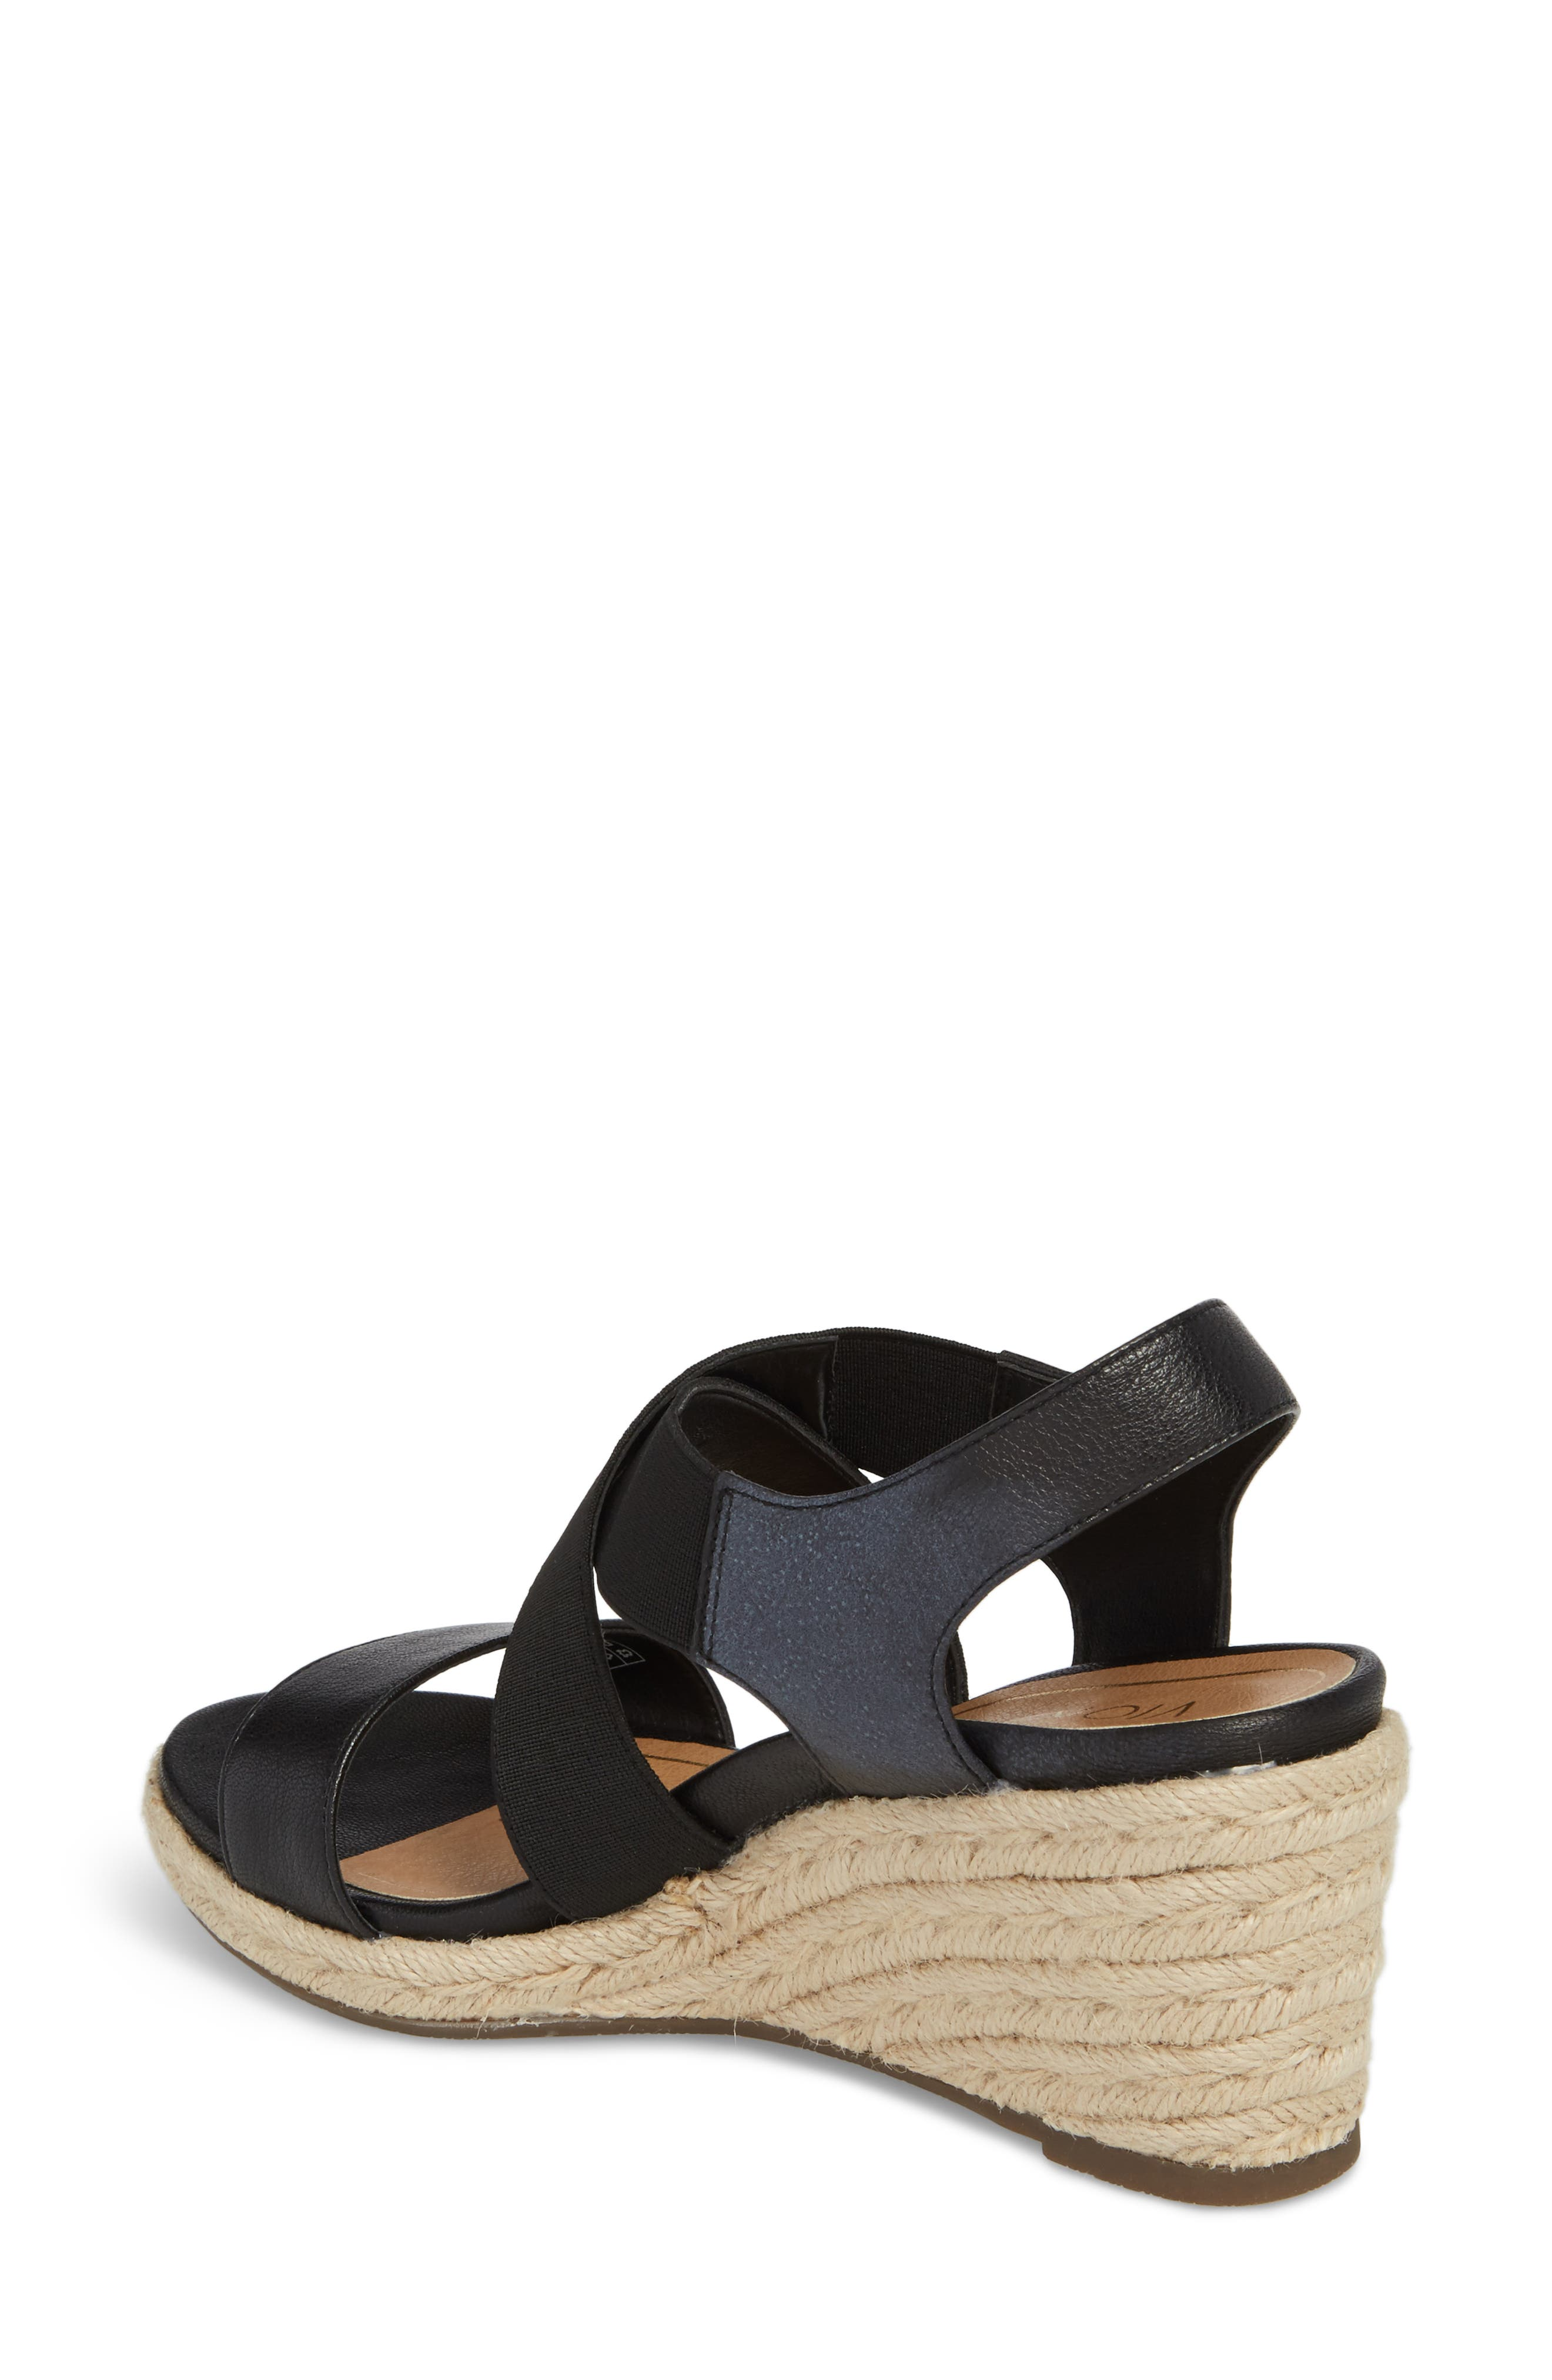 Ainsleigh Wedge Sandal,                             Alternate thumbnail 2, color,                             BLACK LEATHER